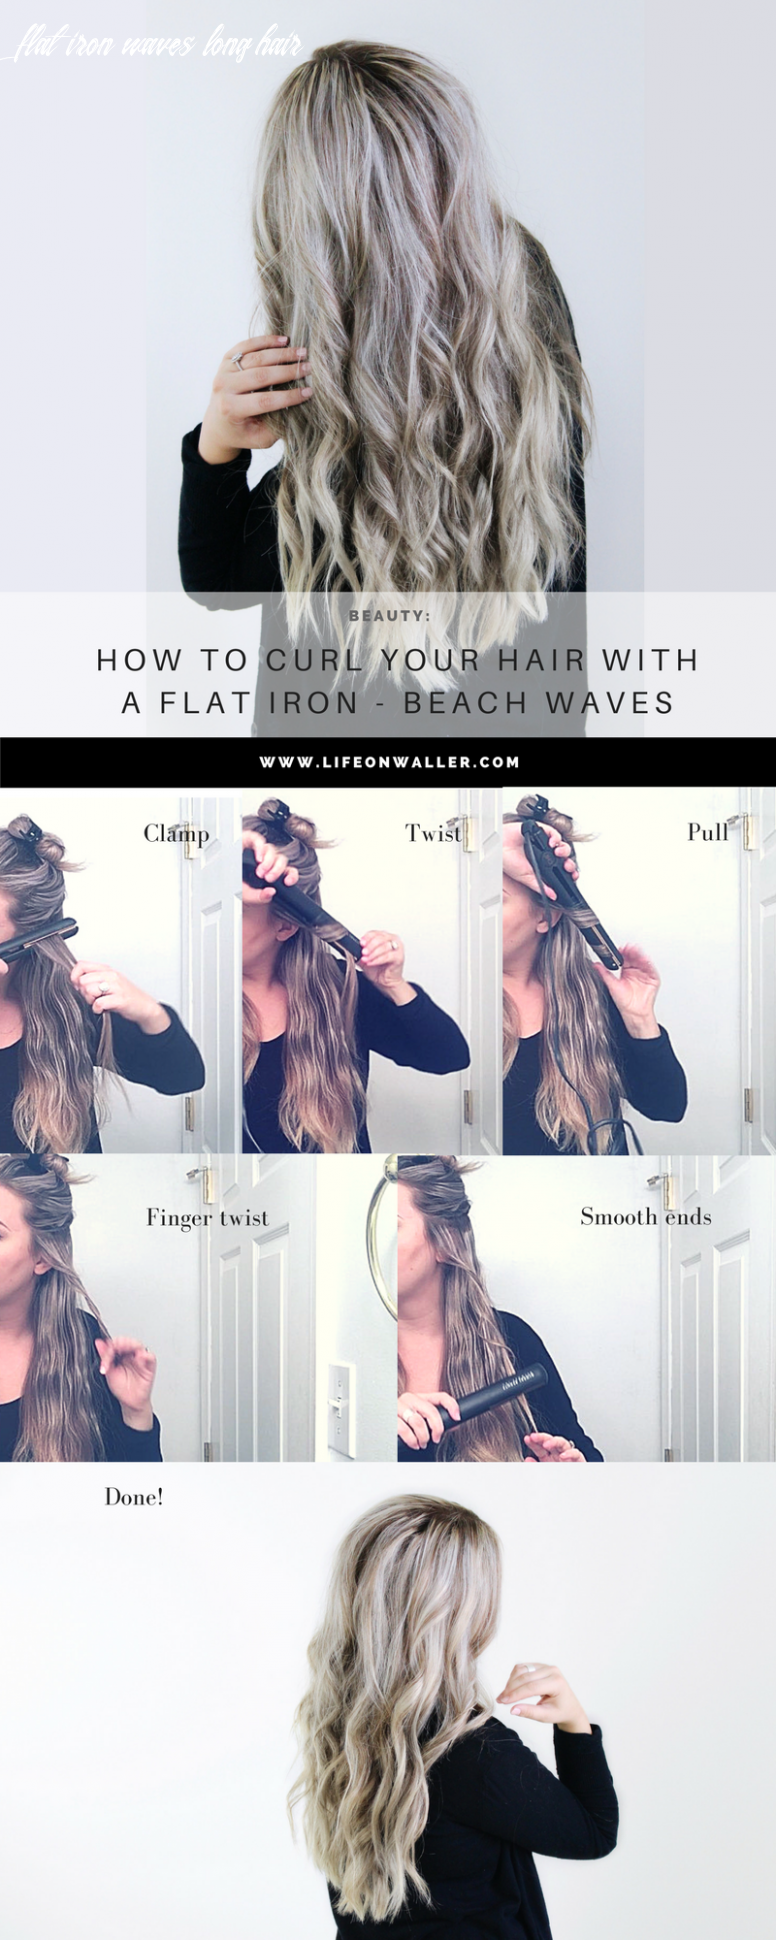 How to curl your hair with a flat iron beach waves | curls for